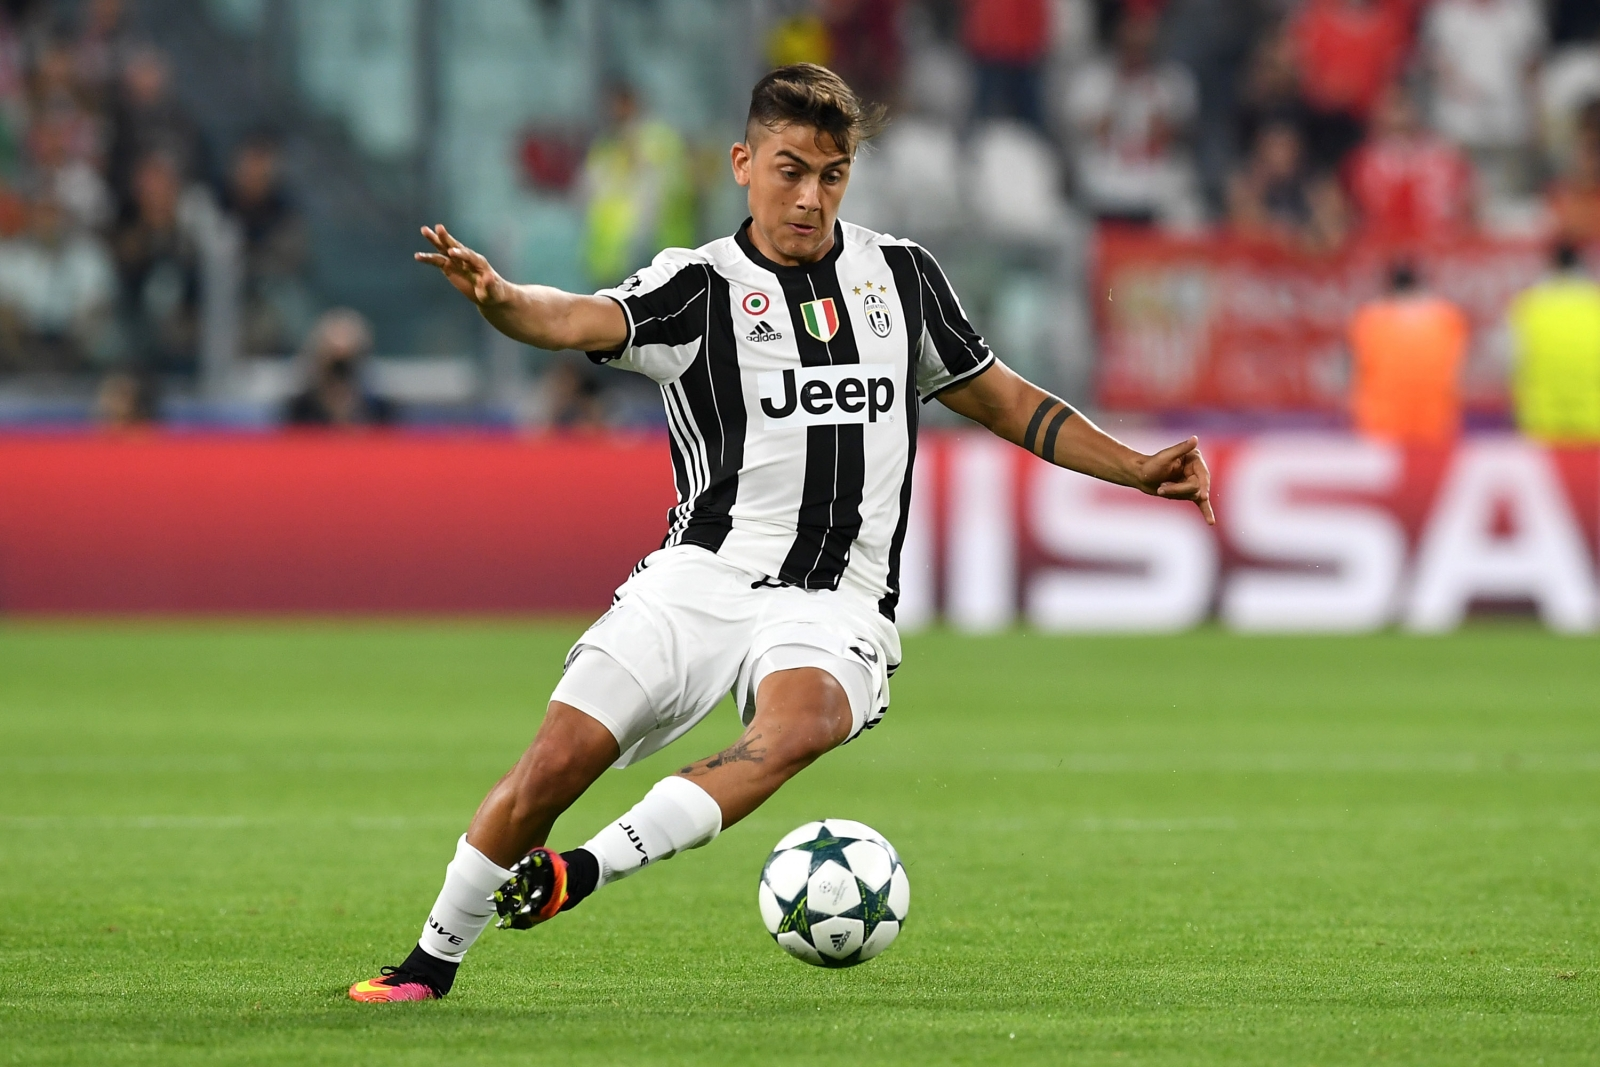 Could Paulo Dybala of Juventus be a 'bargain' £38.3m transfer target for City this summer?